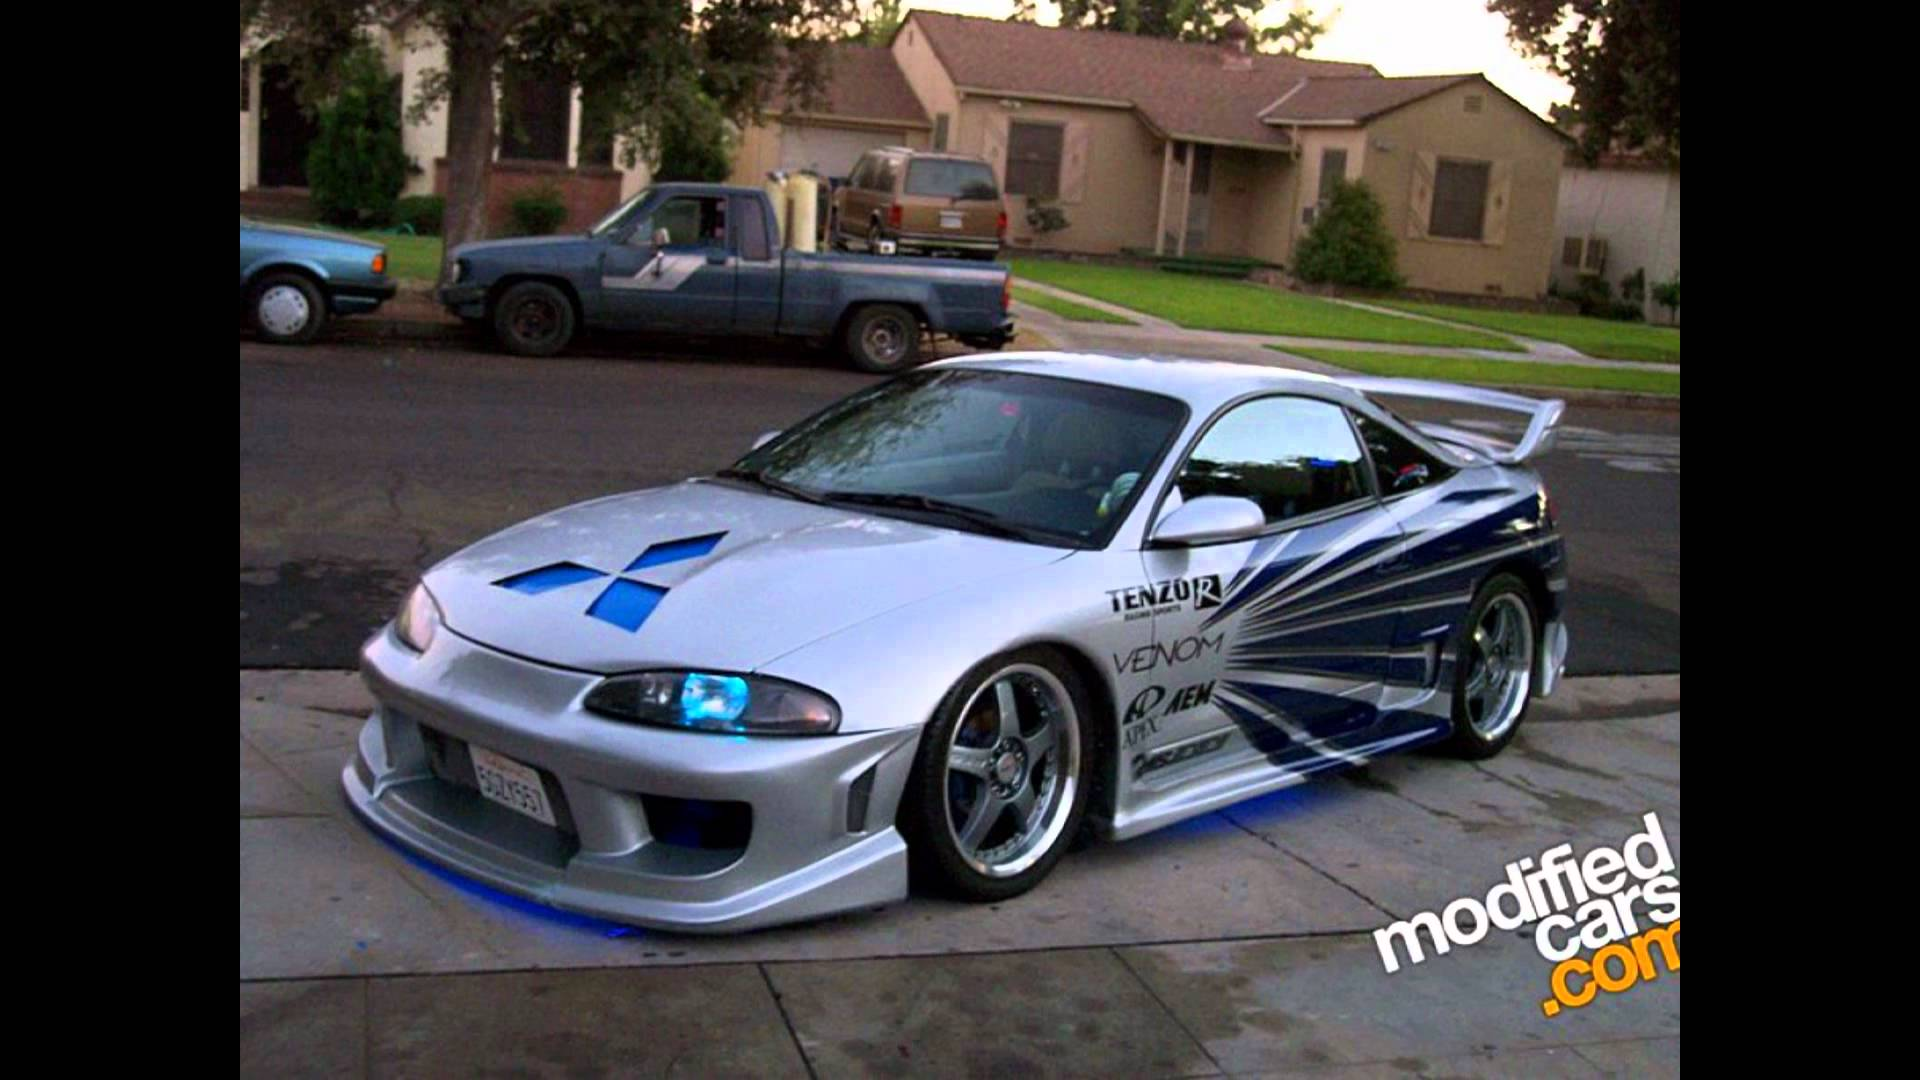 The Best Modified Cars 2 - YouTube